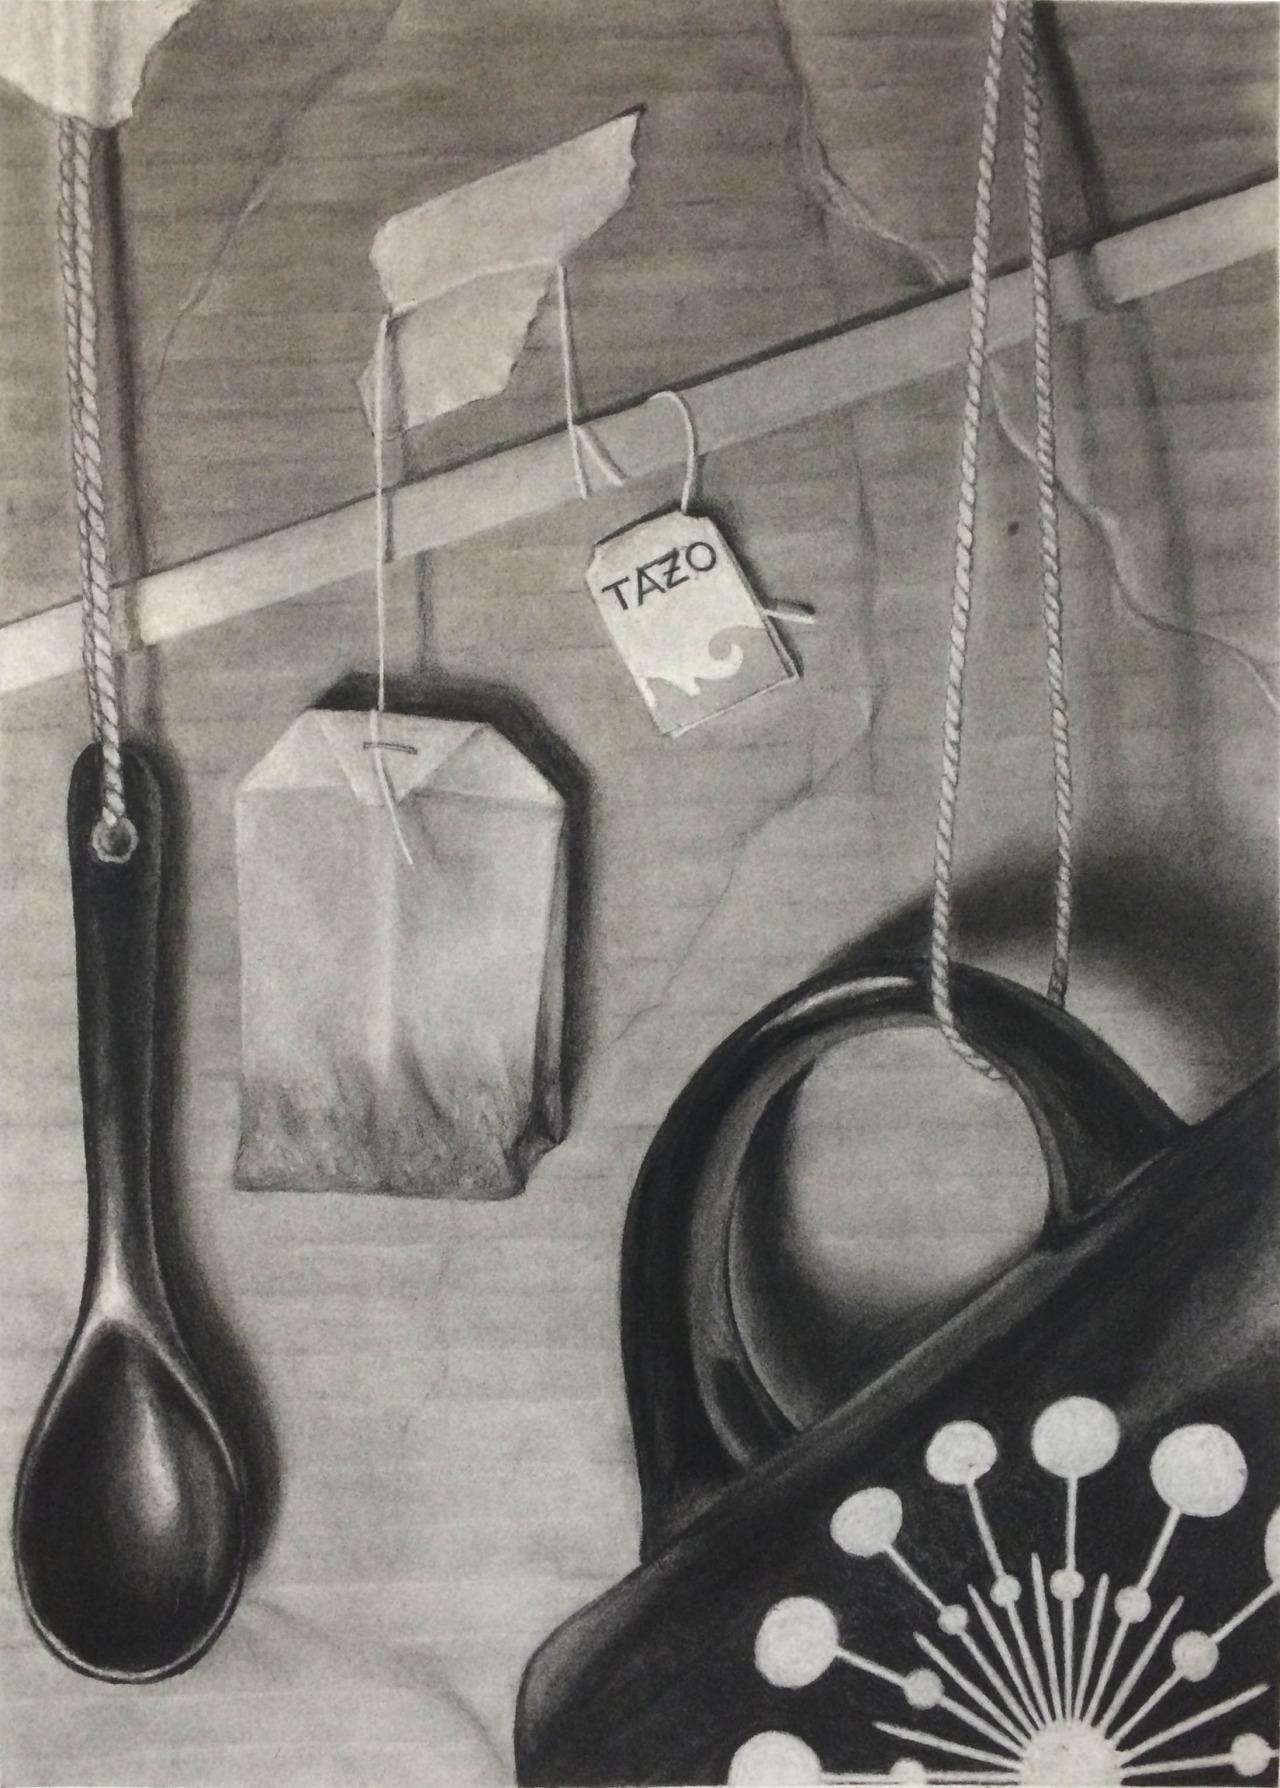 Charcoal, 22x30 in. Hanging still life study for Drawing II.